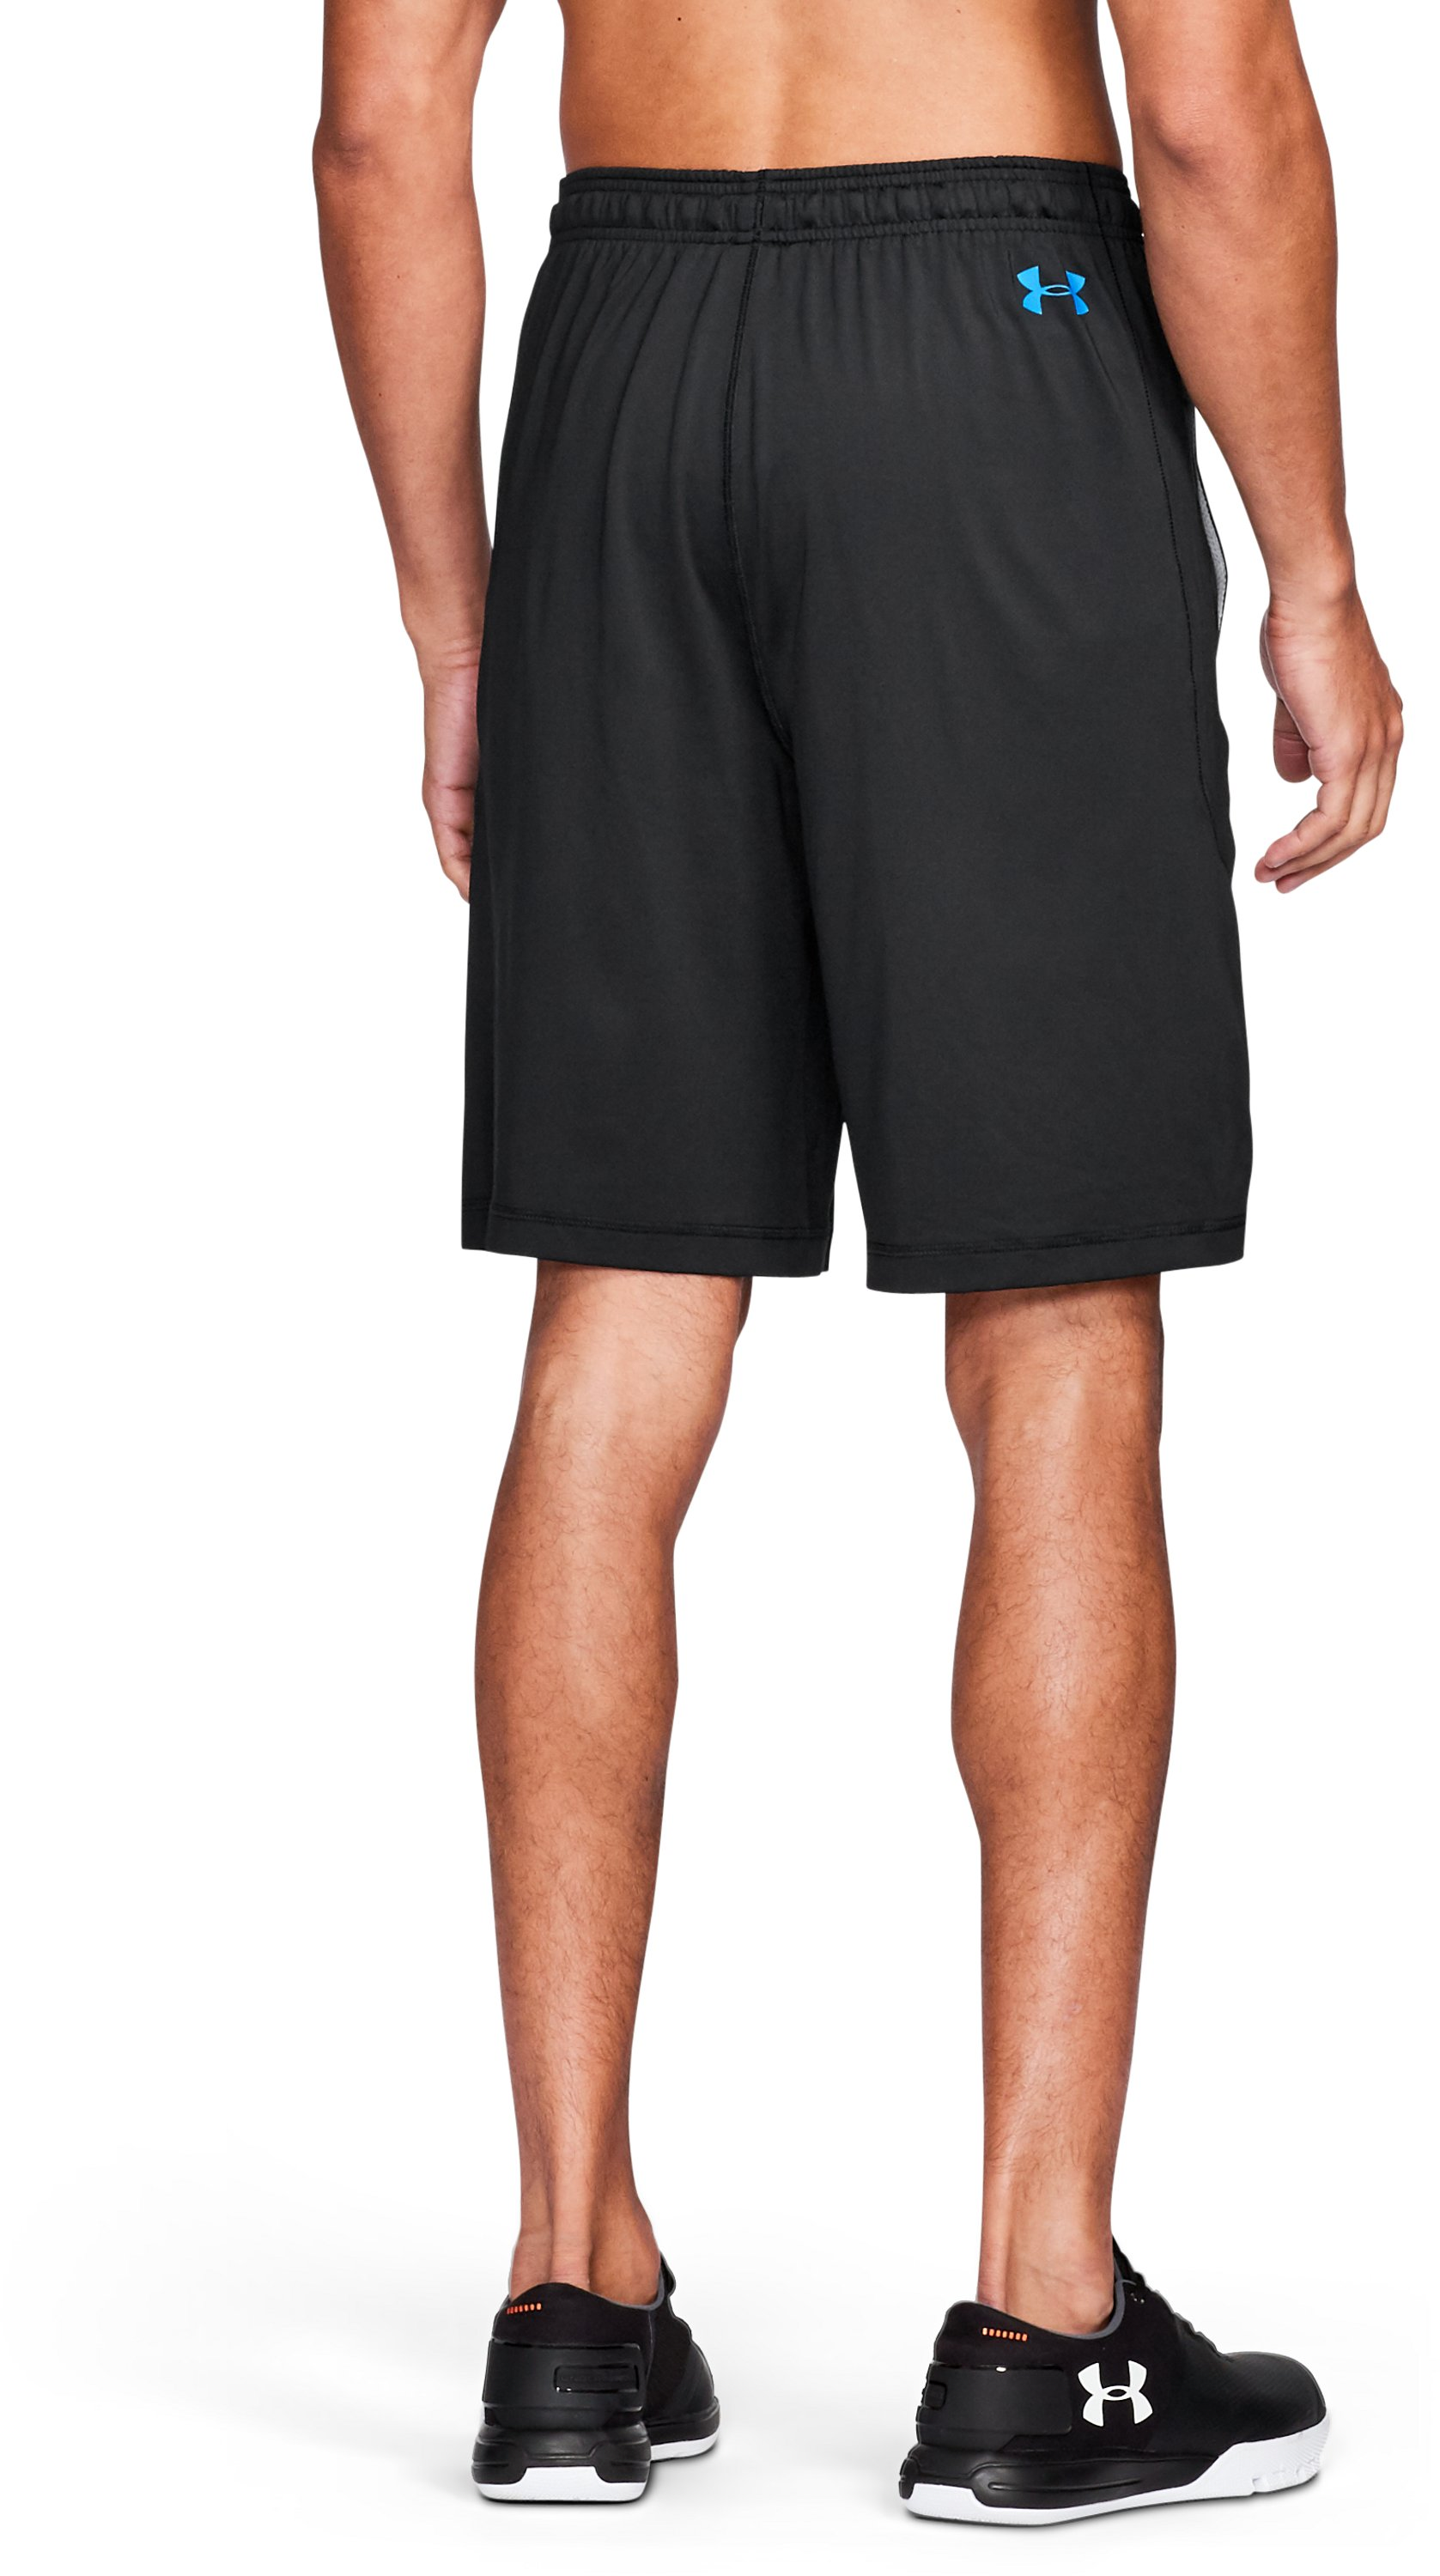 Men's NFL Combine Authentic UA Raid Shorts, Carolina Panthers,